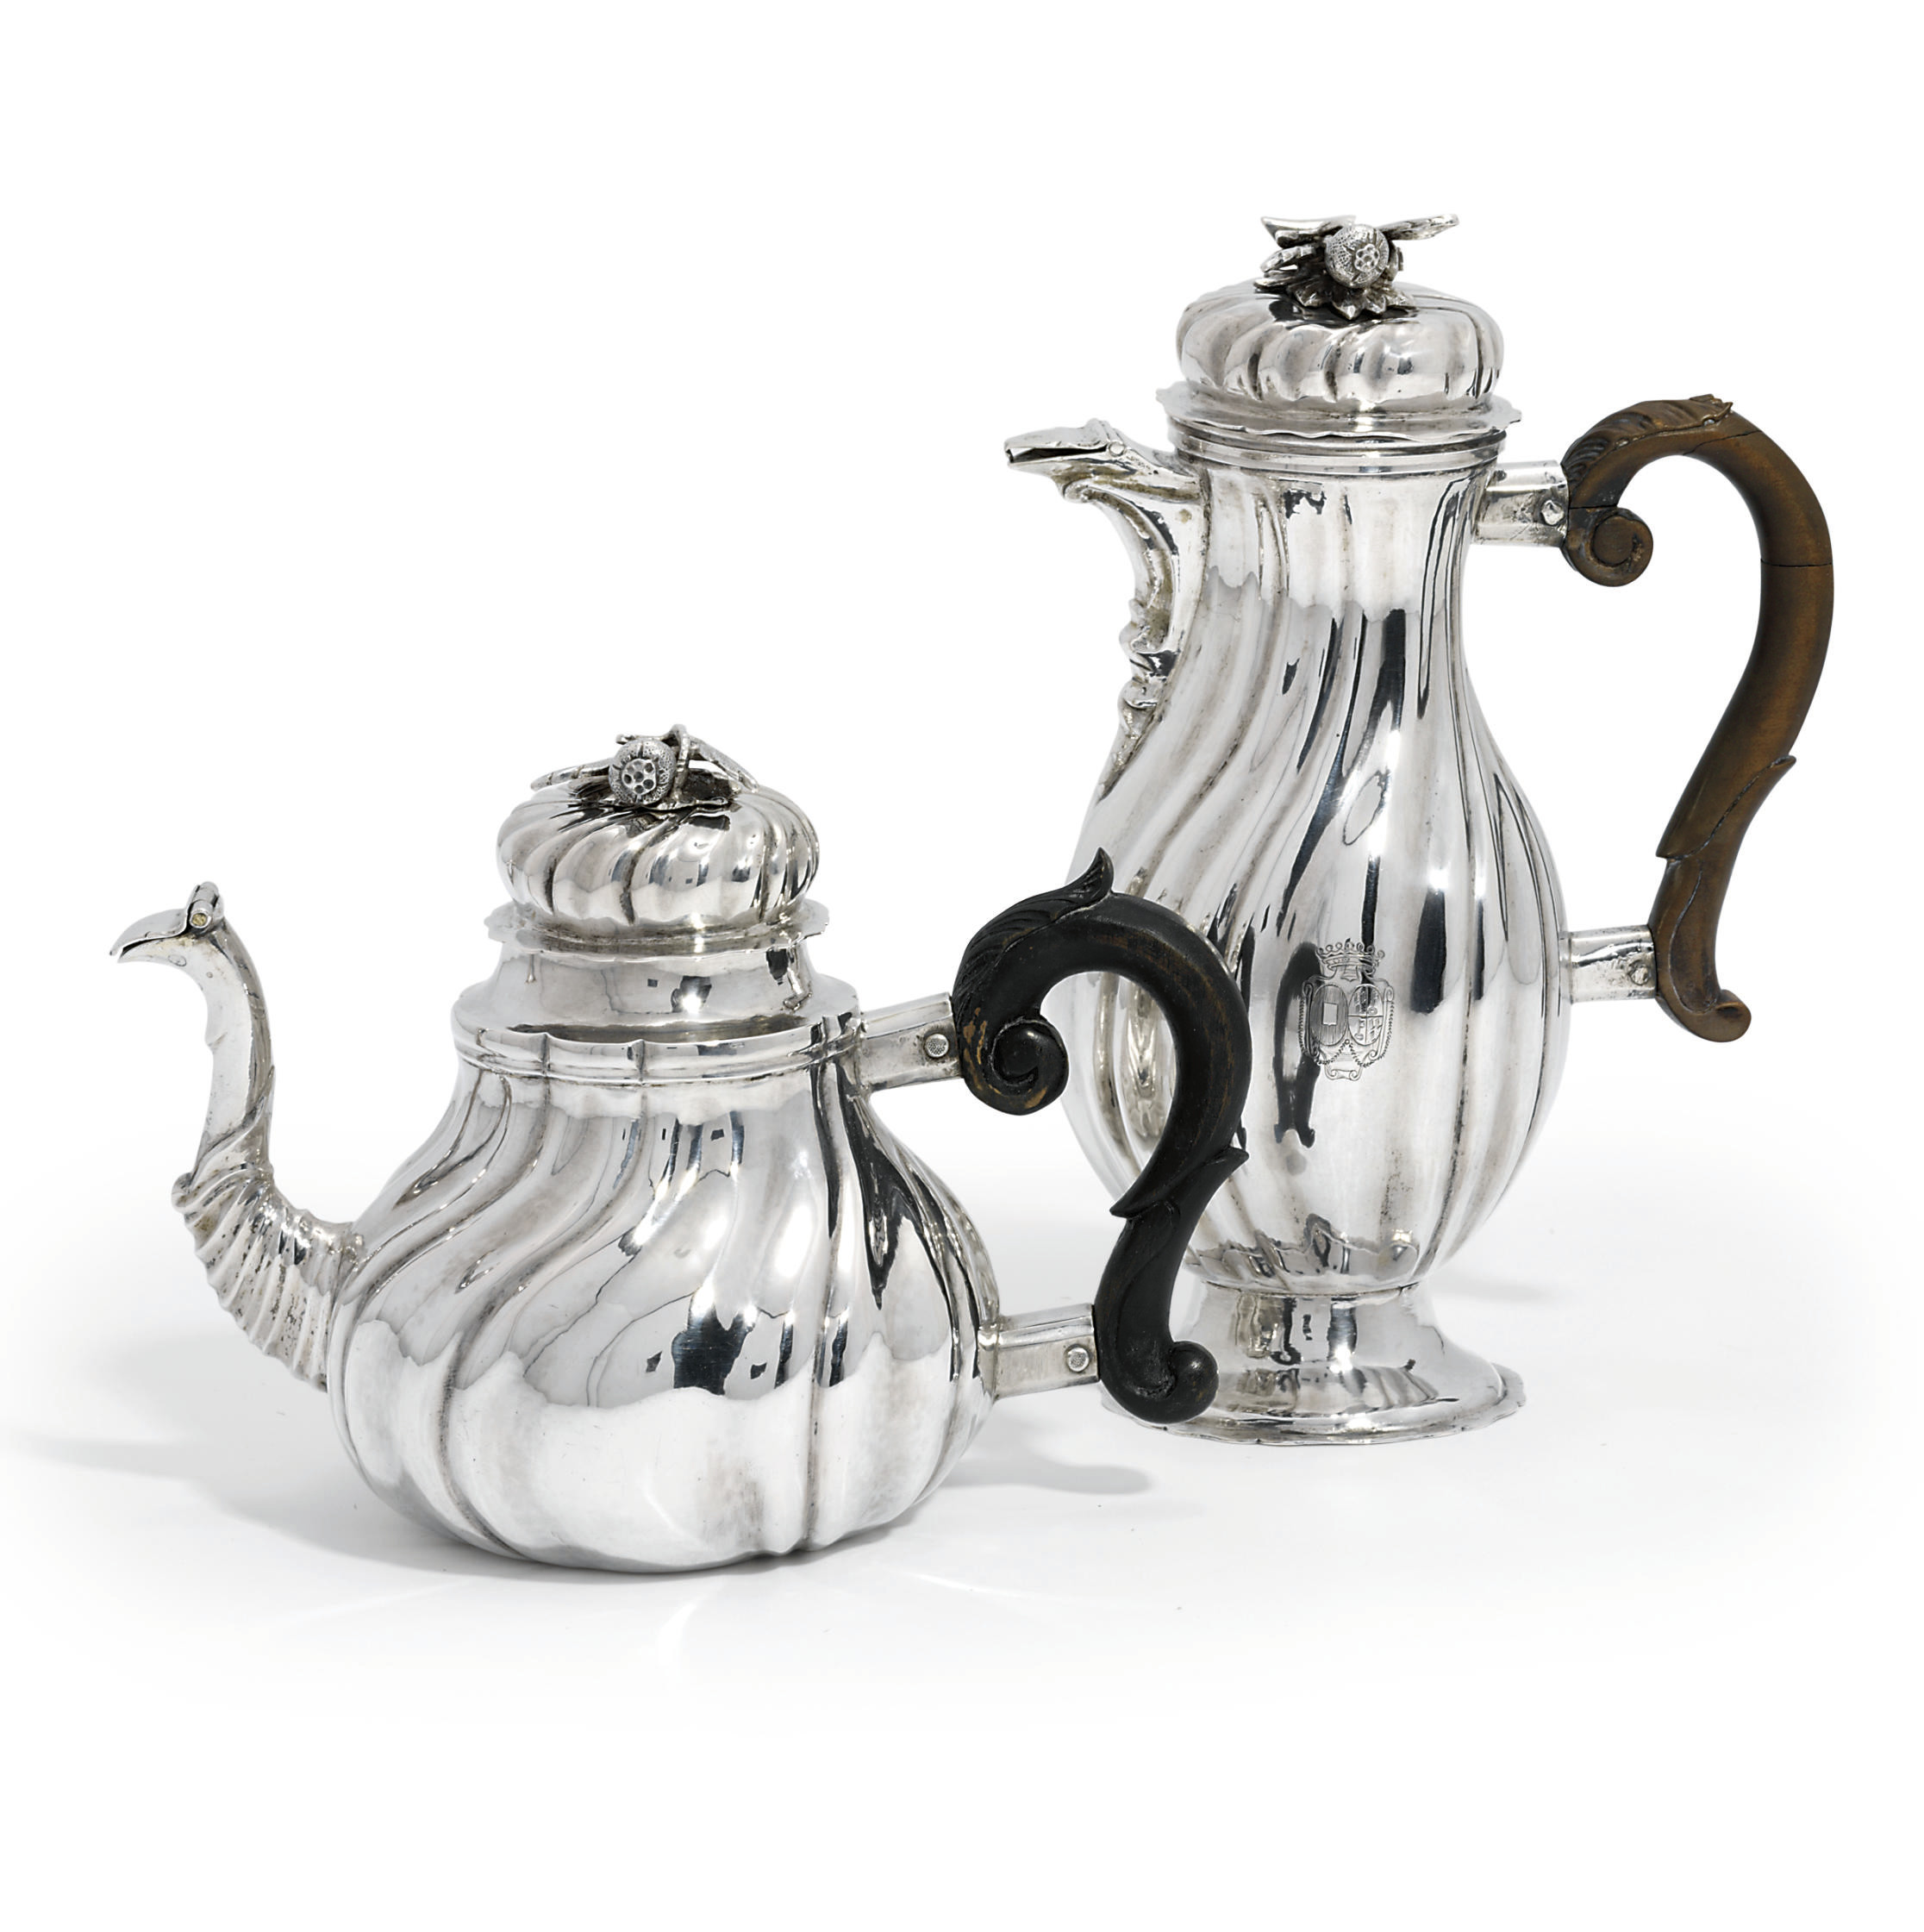 A GERMAN SILVER TEAPOT AND COFFEE-JUG